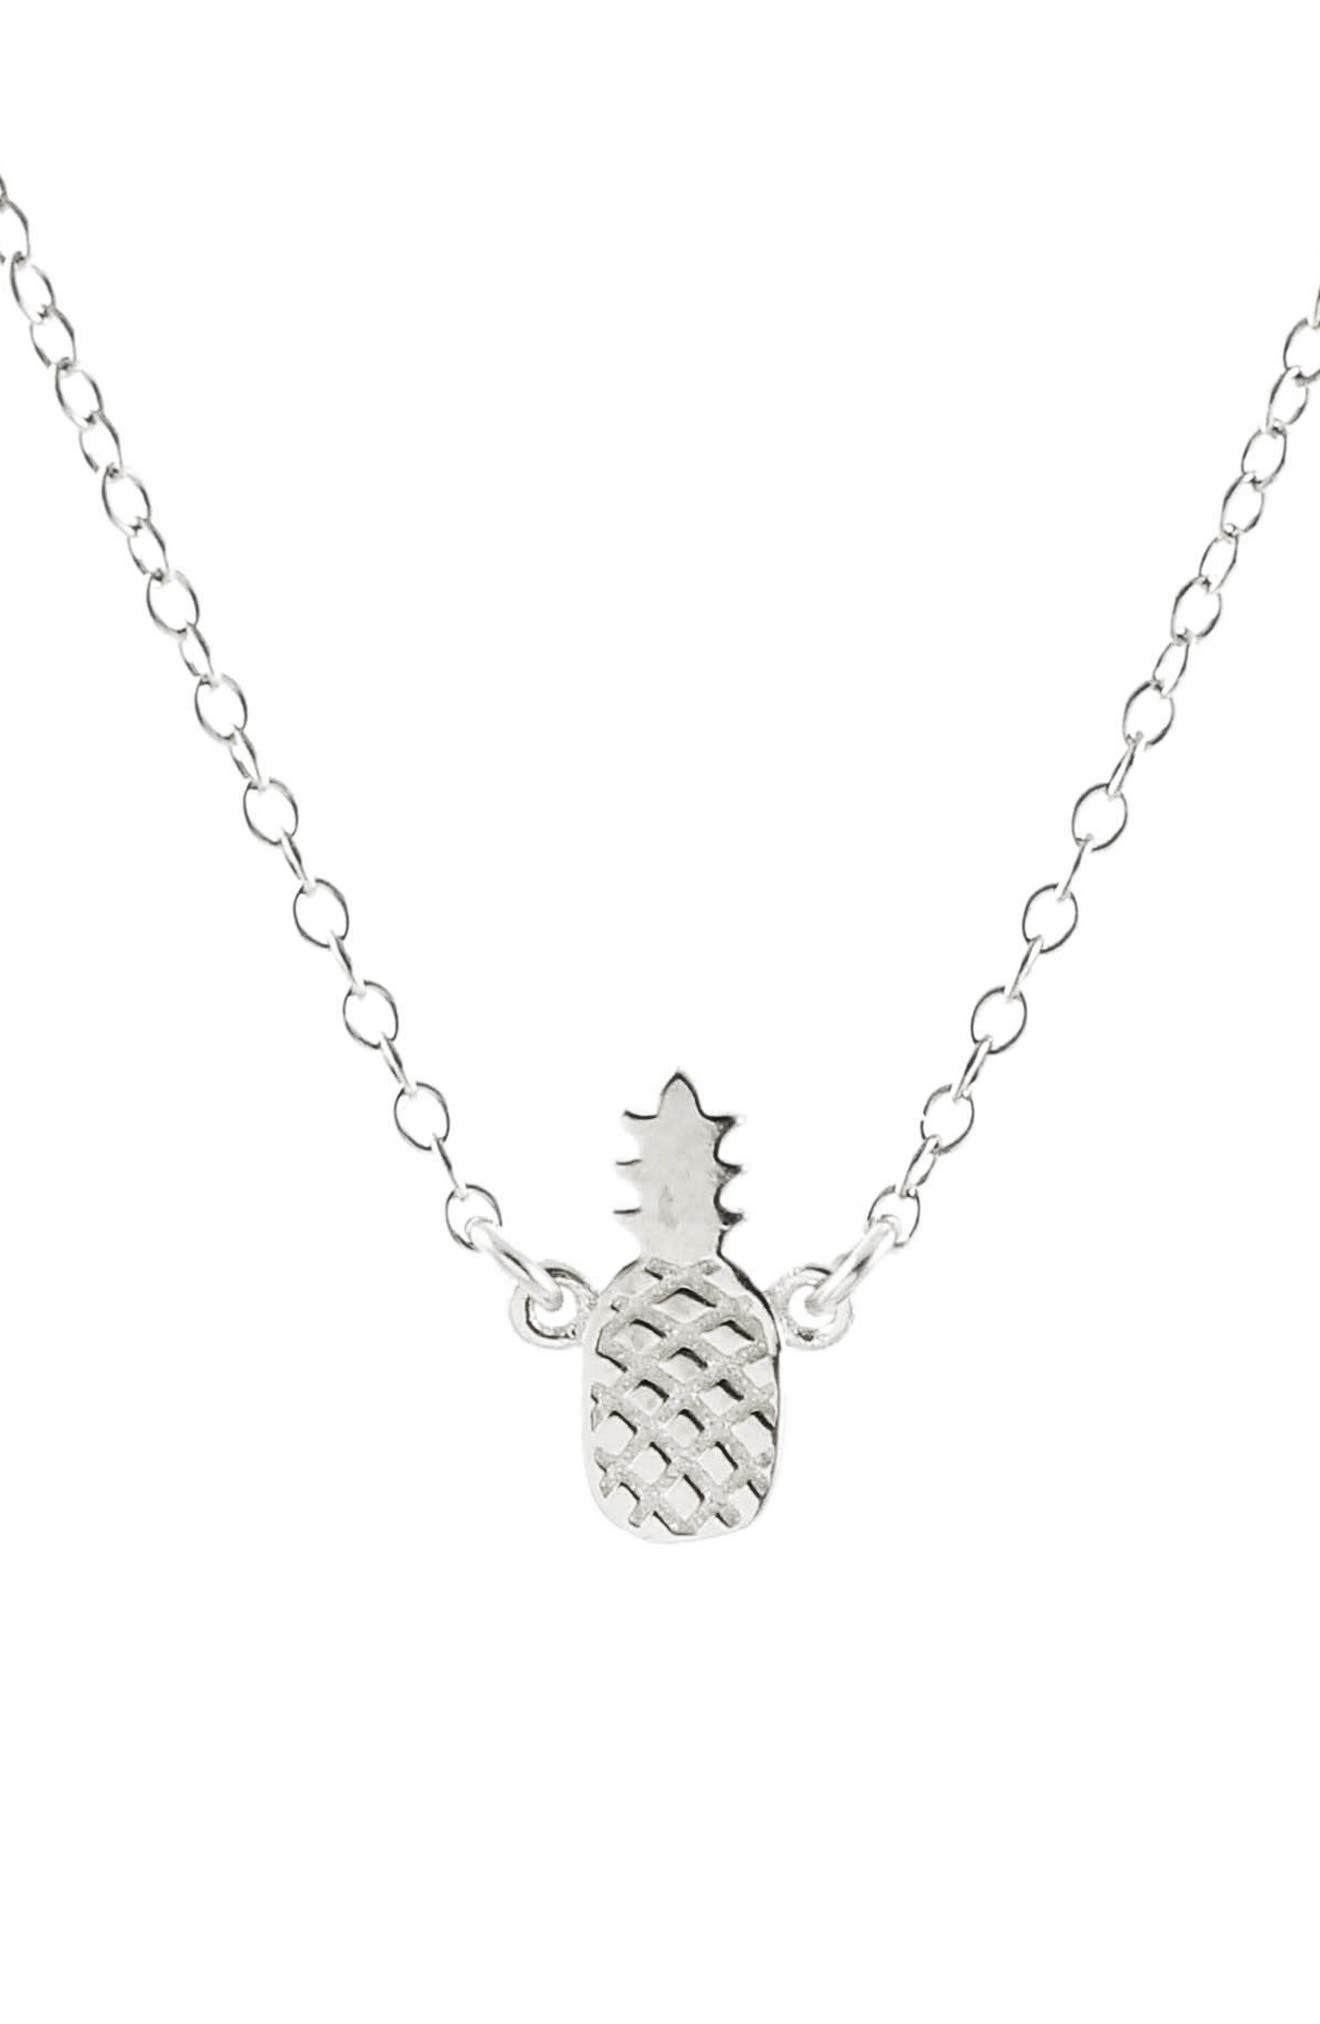 Pineapple Charm Necklace,                         Main,                         color, Silver